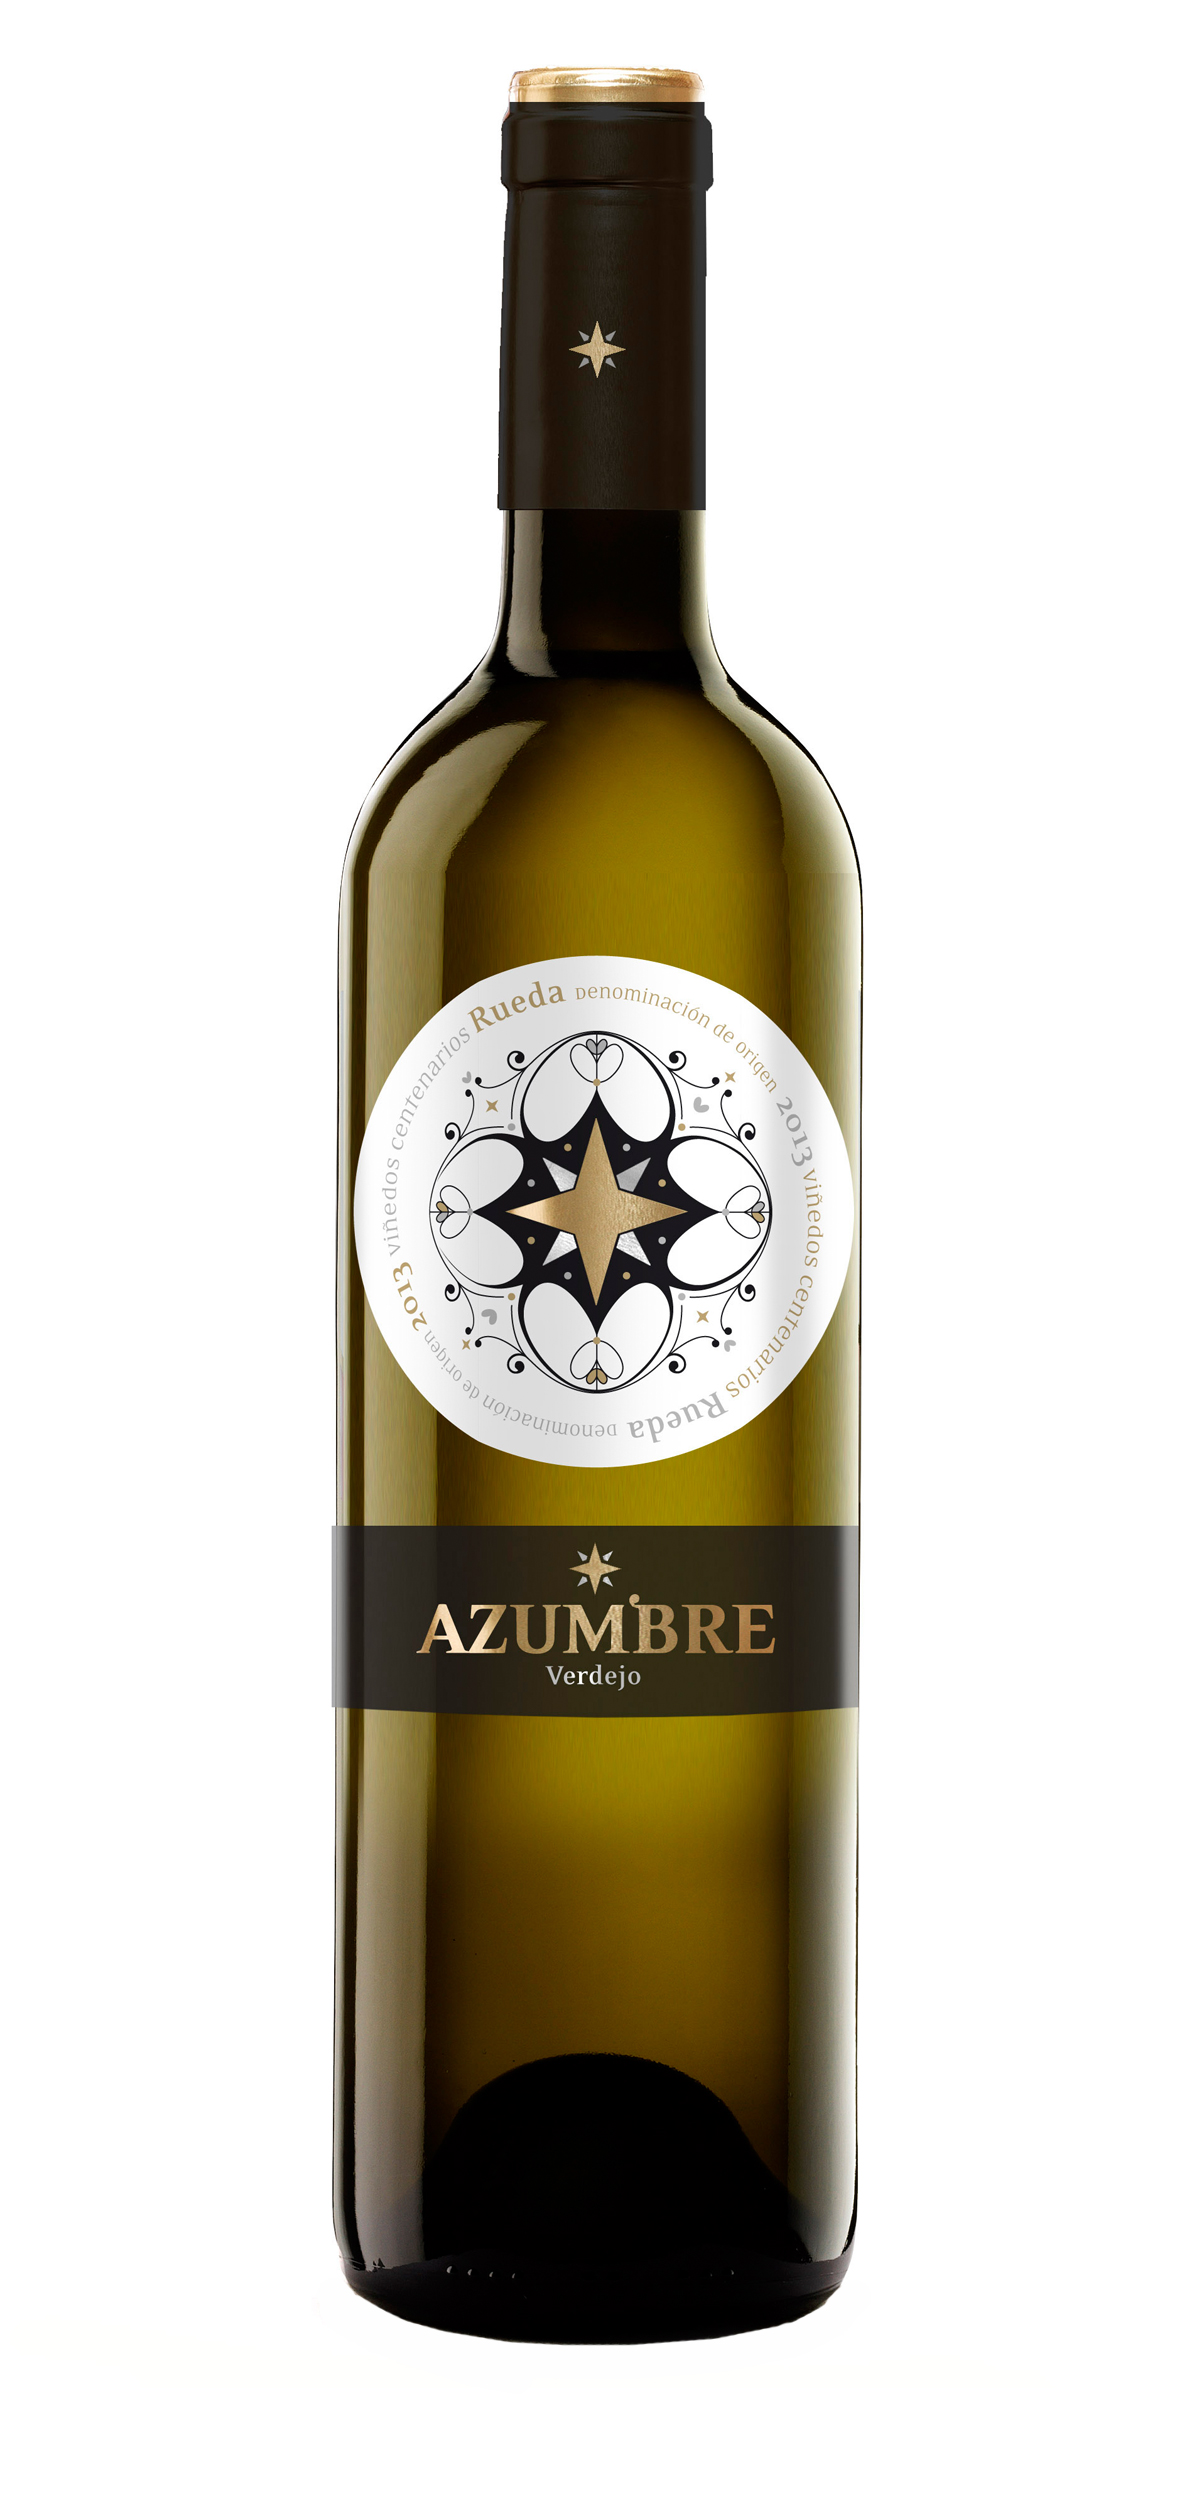 Azumbre wine bottle design